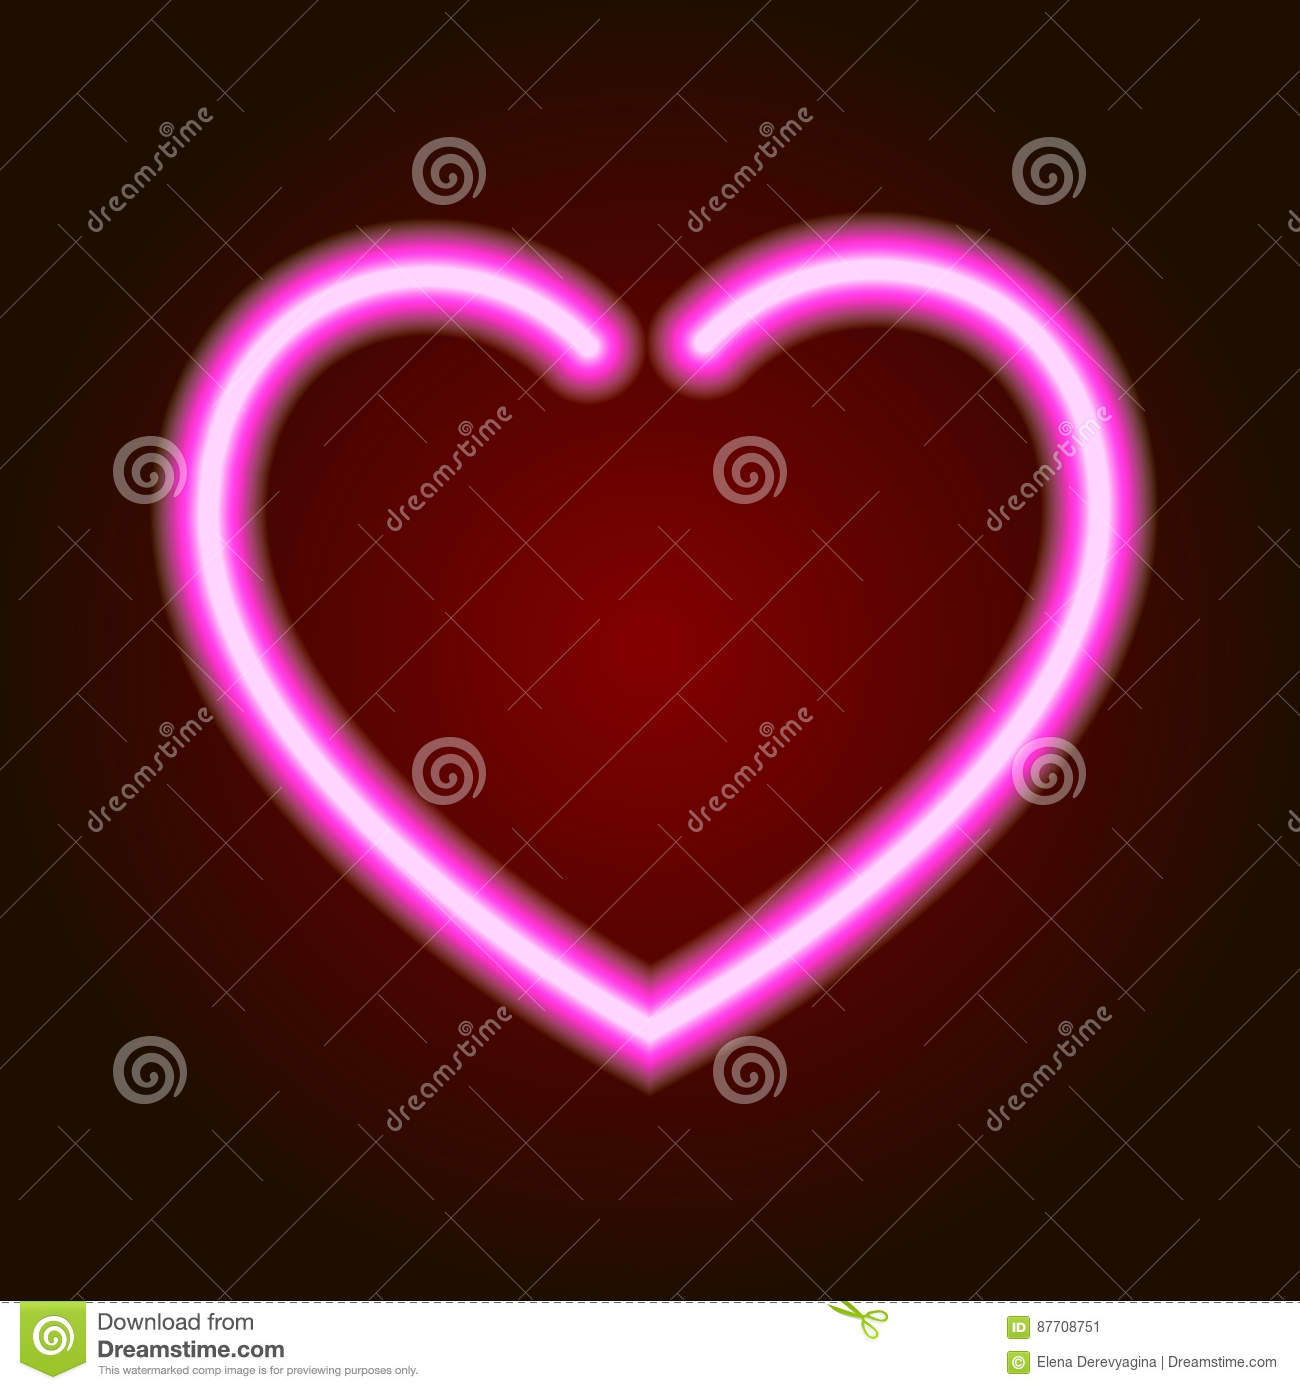 Pink neon glowing heart symbol of love on dark background of illustration